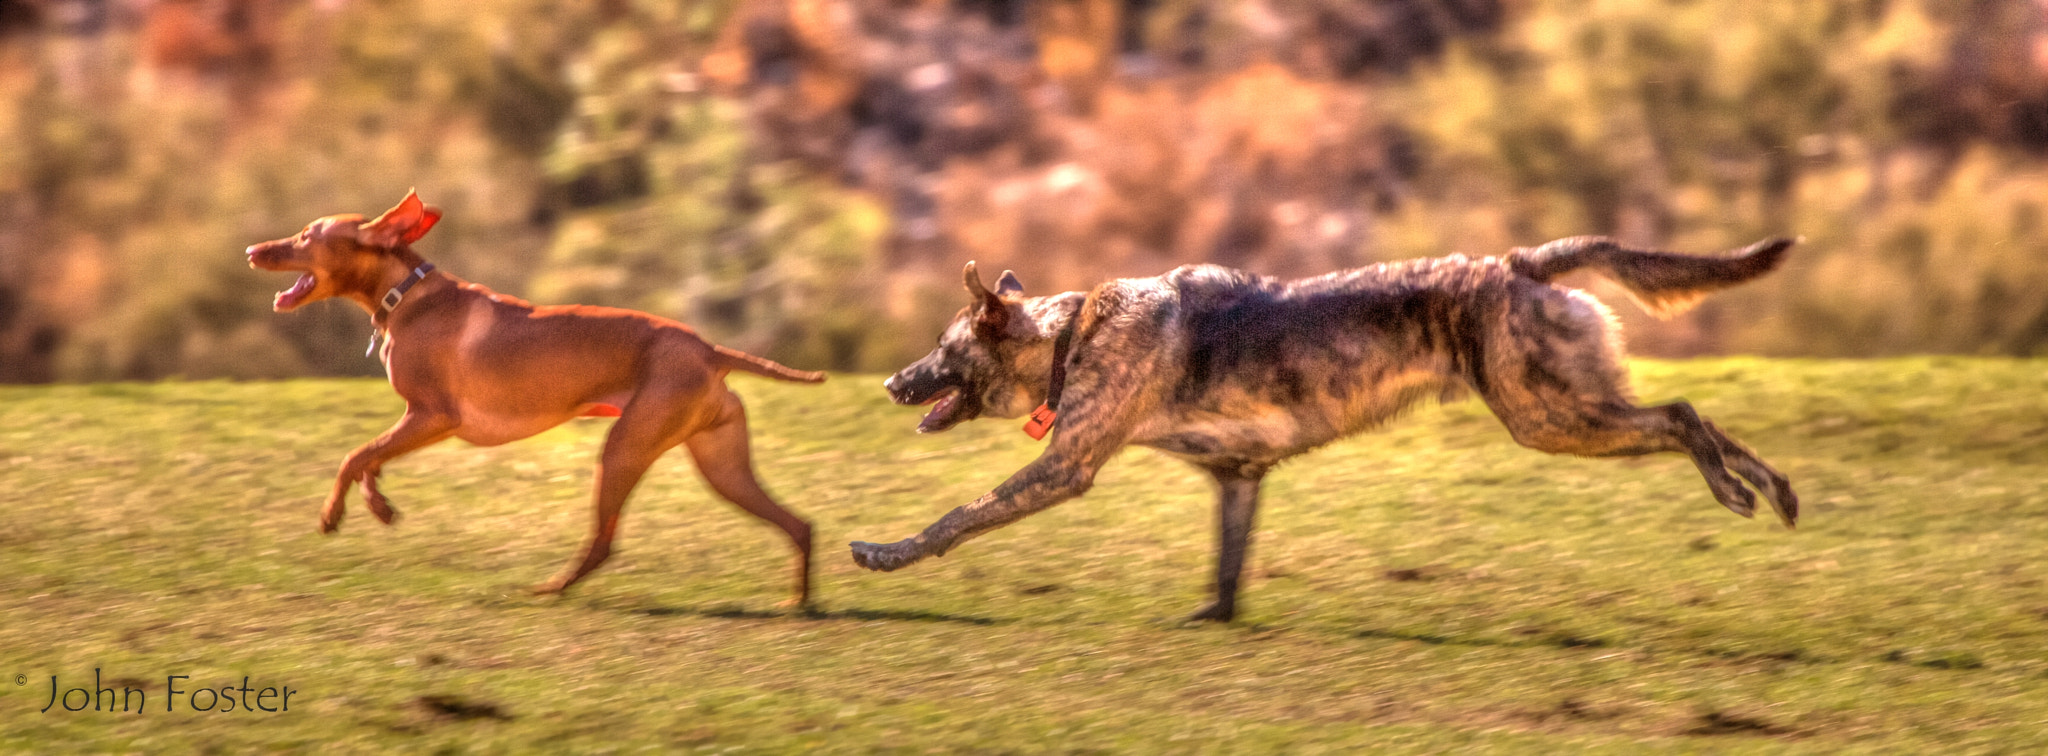 Photograph RUN!!!!!!!!! by John Foster on 500px